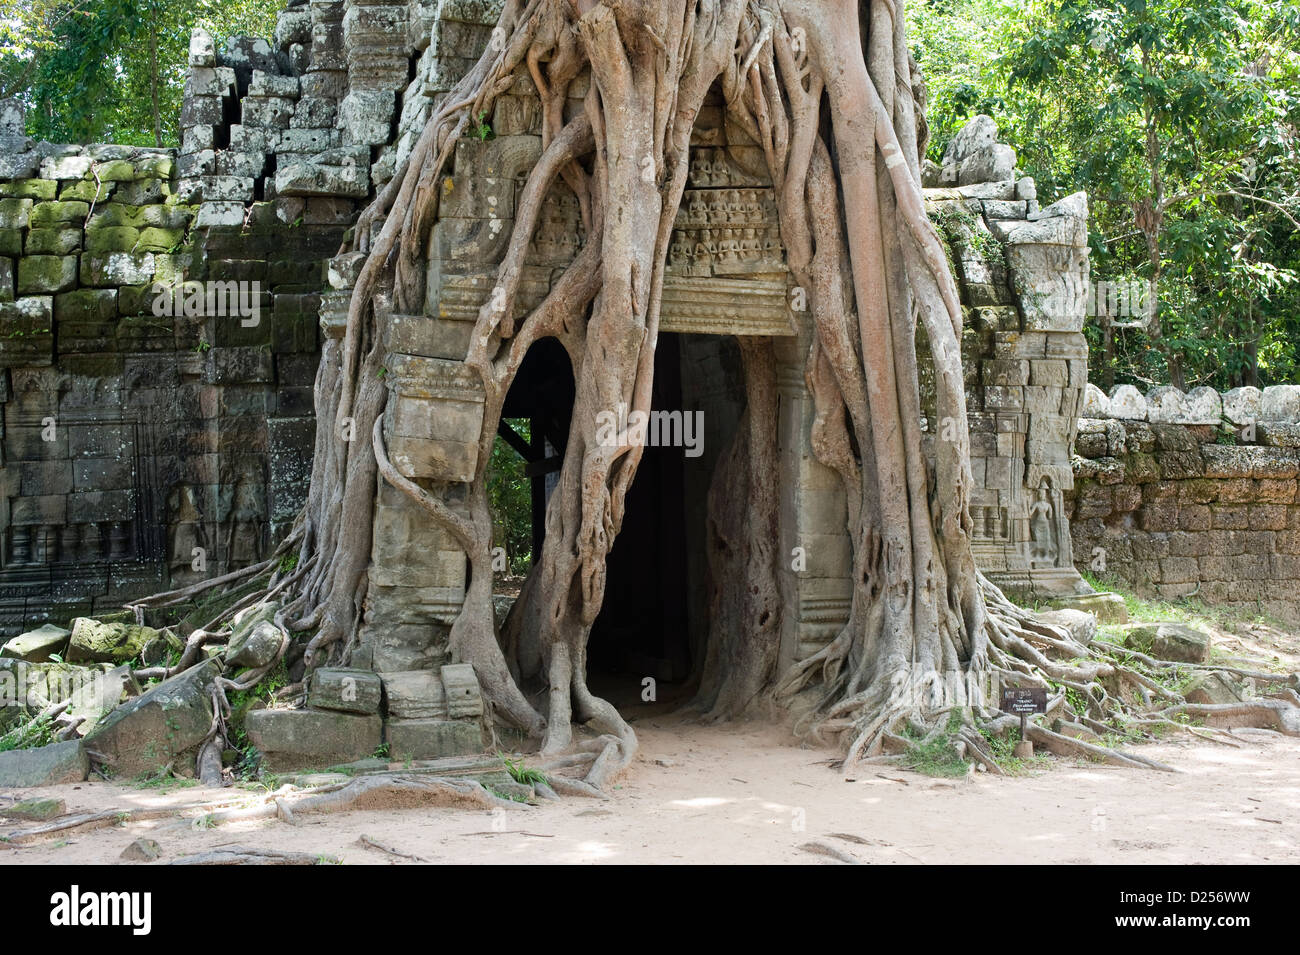 Ruined doorway in the grip of a Strangle Fig tree, Ta Som Temple, Cambodia. - Stock Image